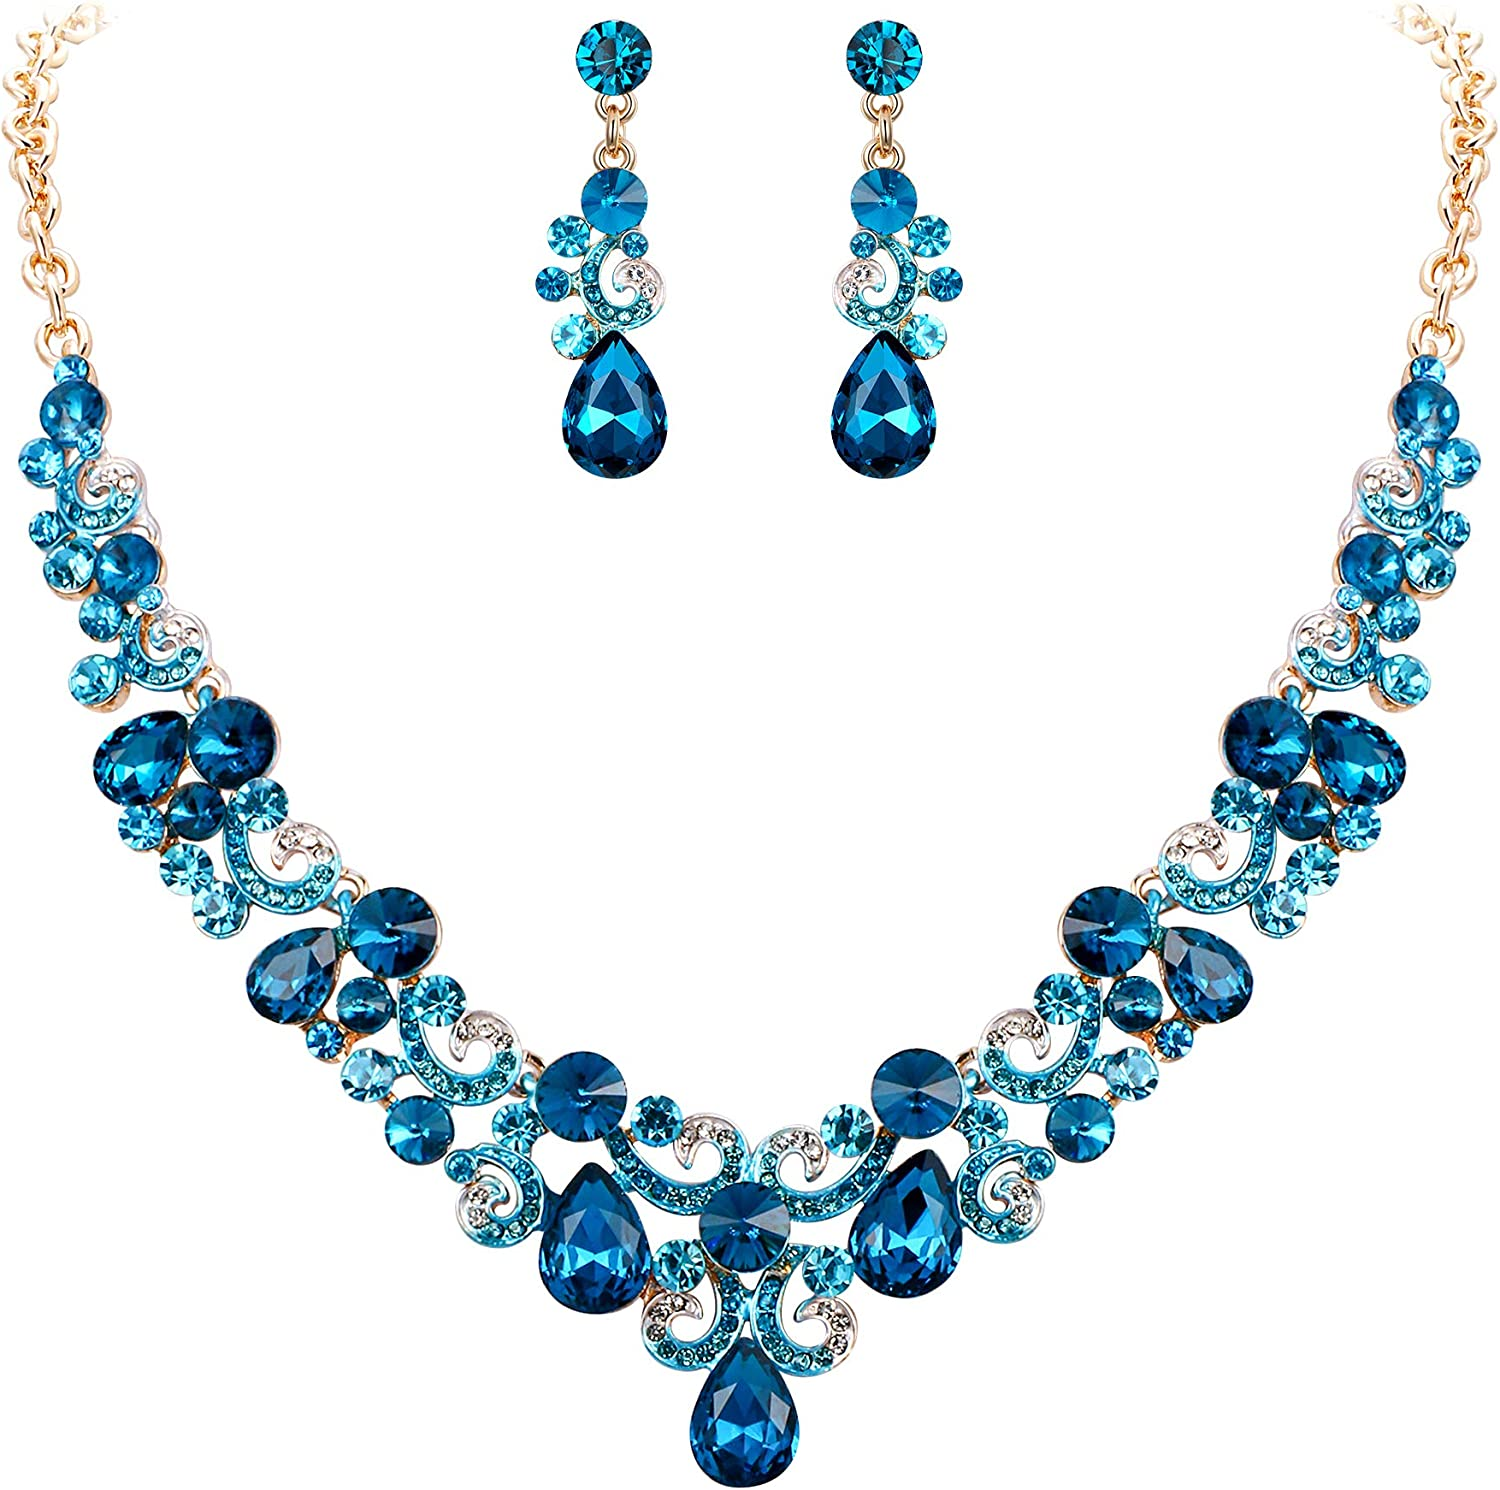 EVER FAITH Wedding Bridal Jewelry Accessory Crystal Elegant Teardrop Floral Wave Necklace Earrings Set for Women